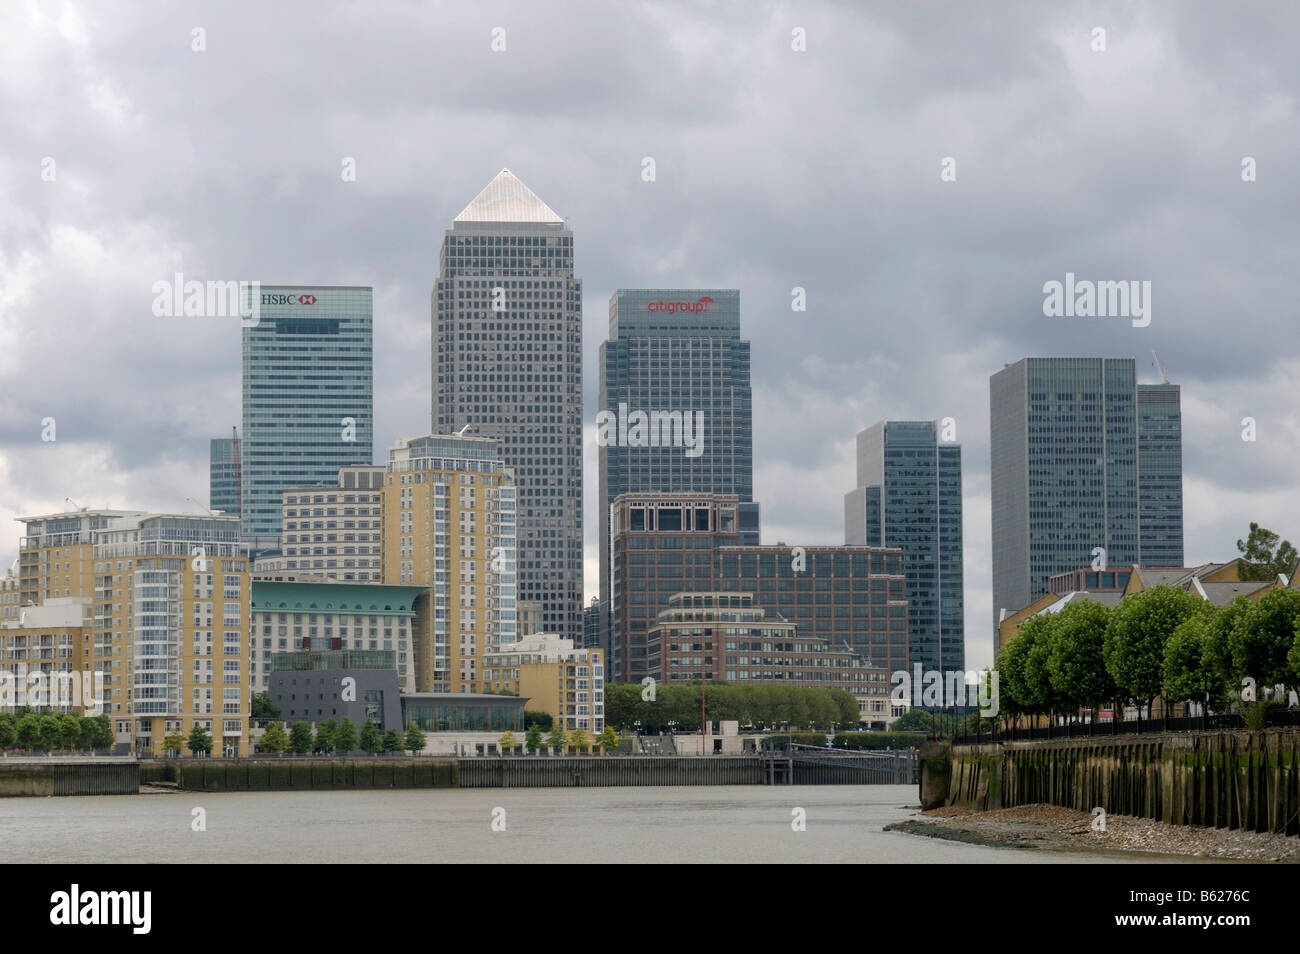 Docklands, skyscrapers, London, Great Britain, Europe - Stock Image